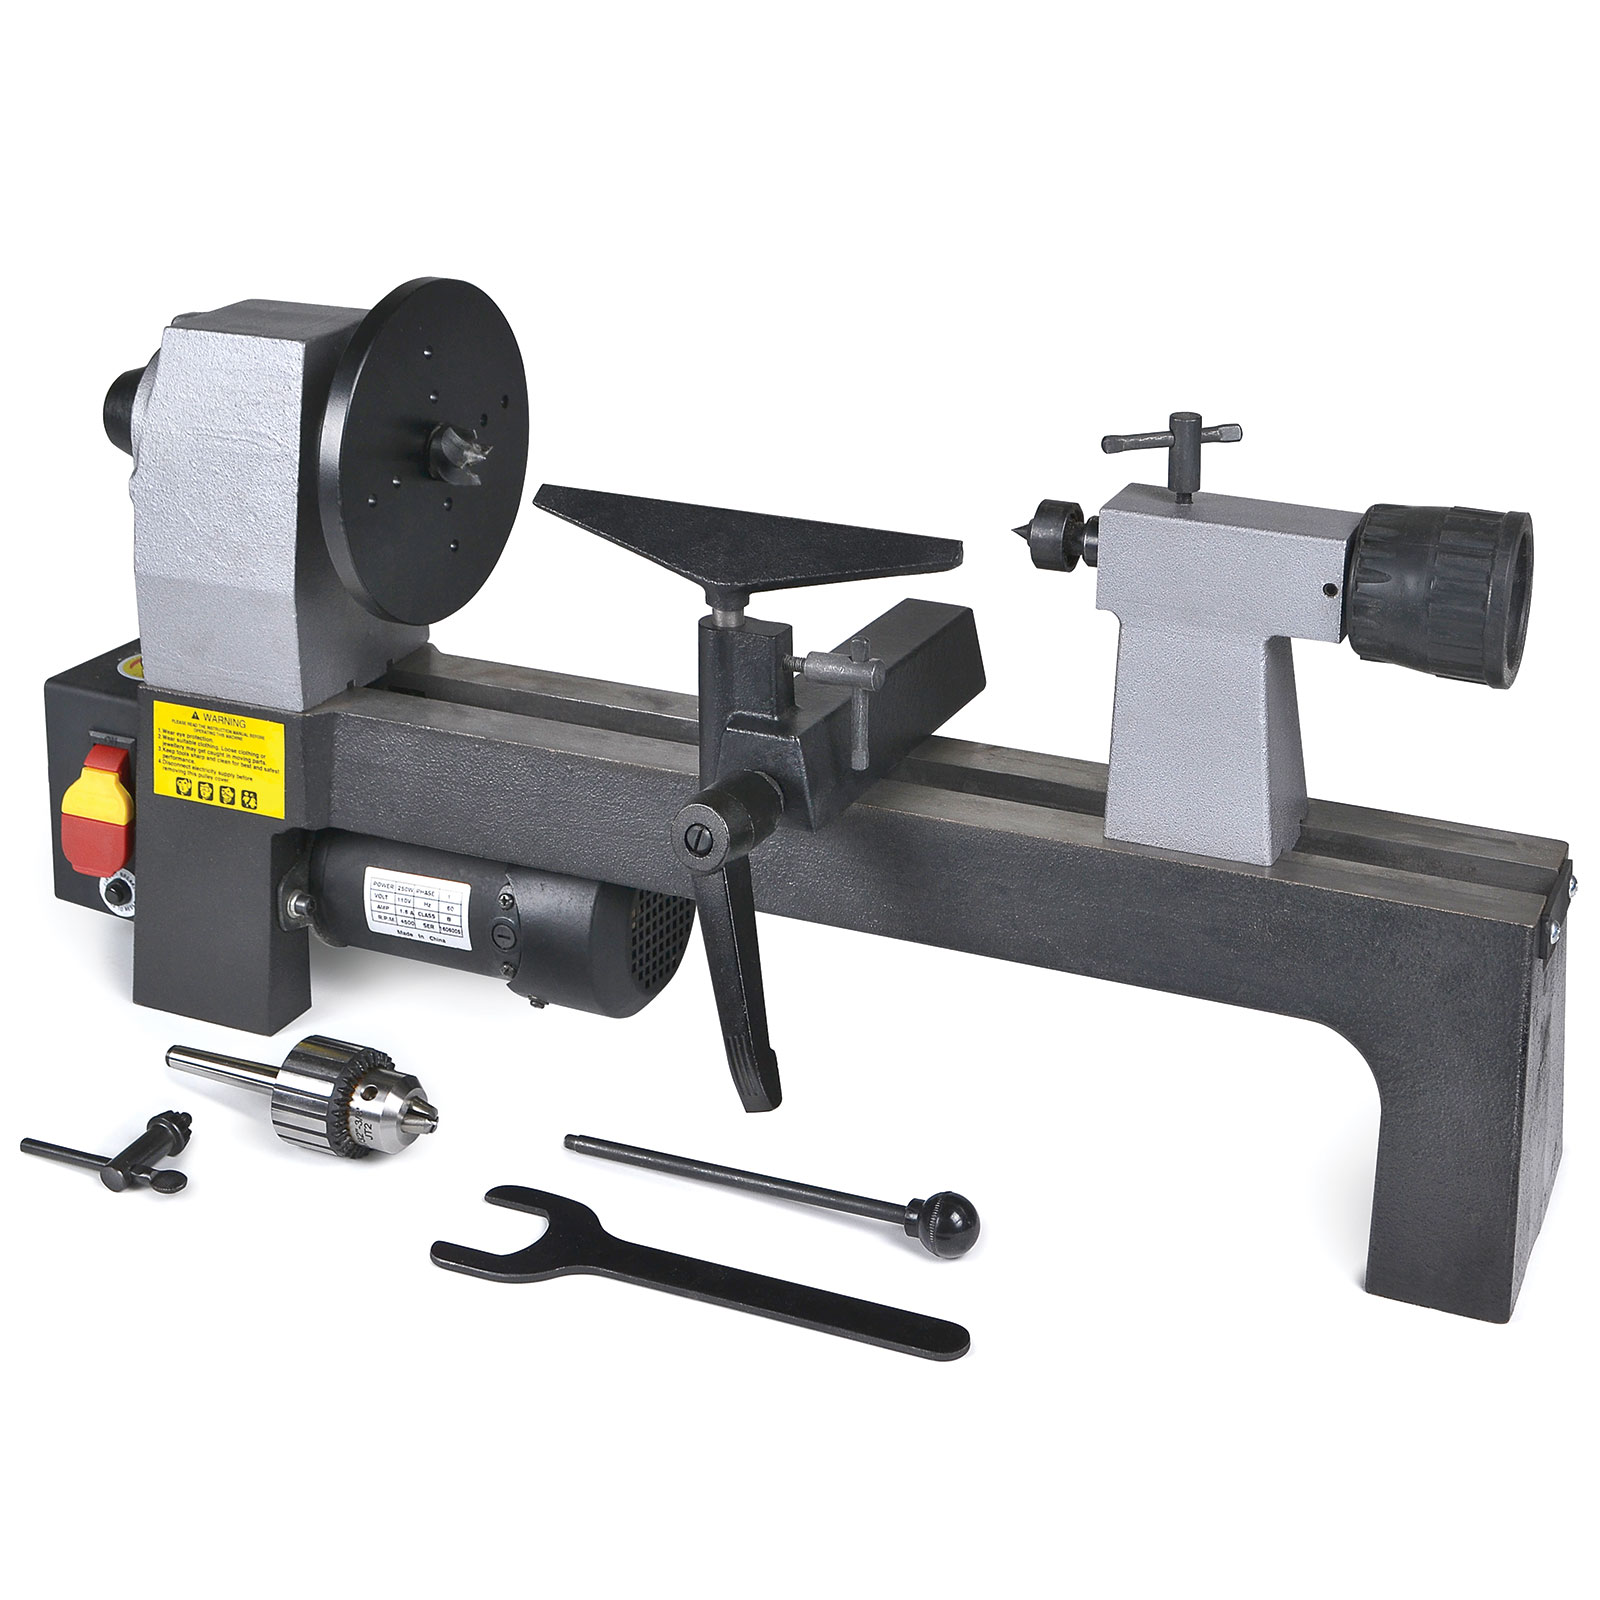 MicroLux 8 x 12 Wood Turner's Lathe